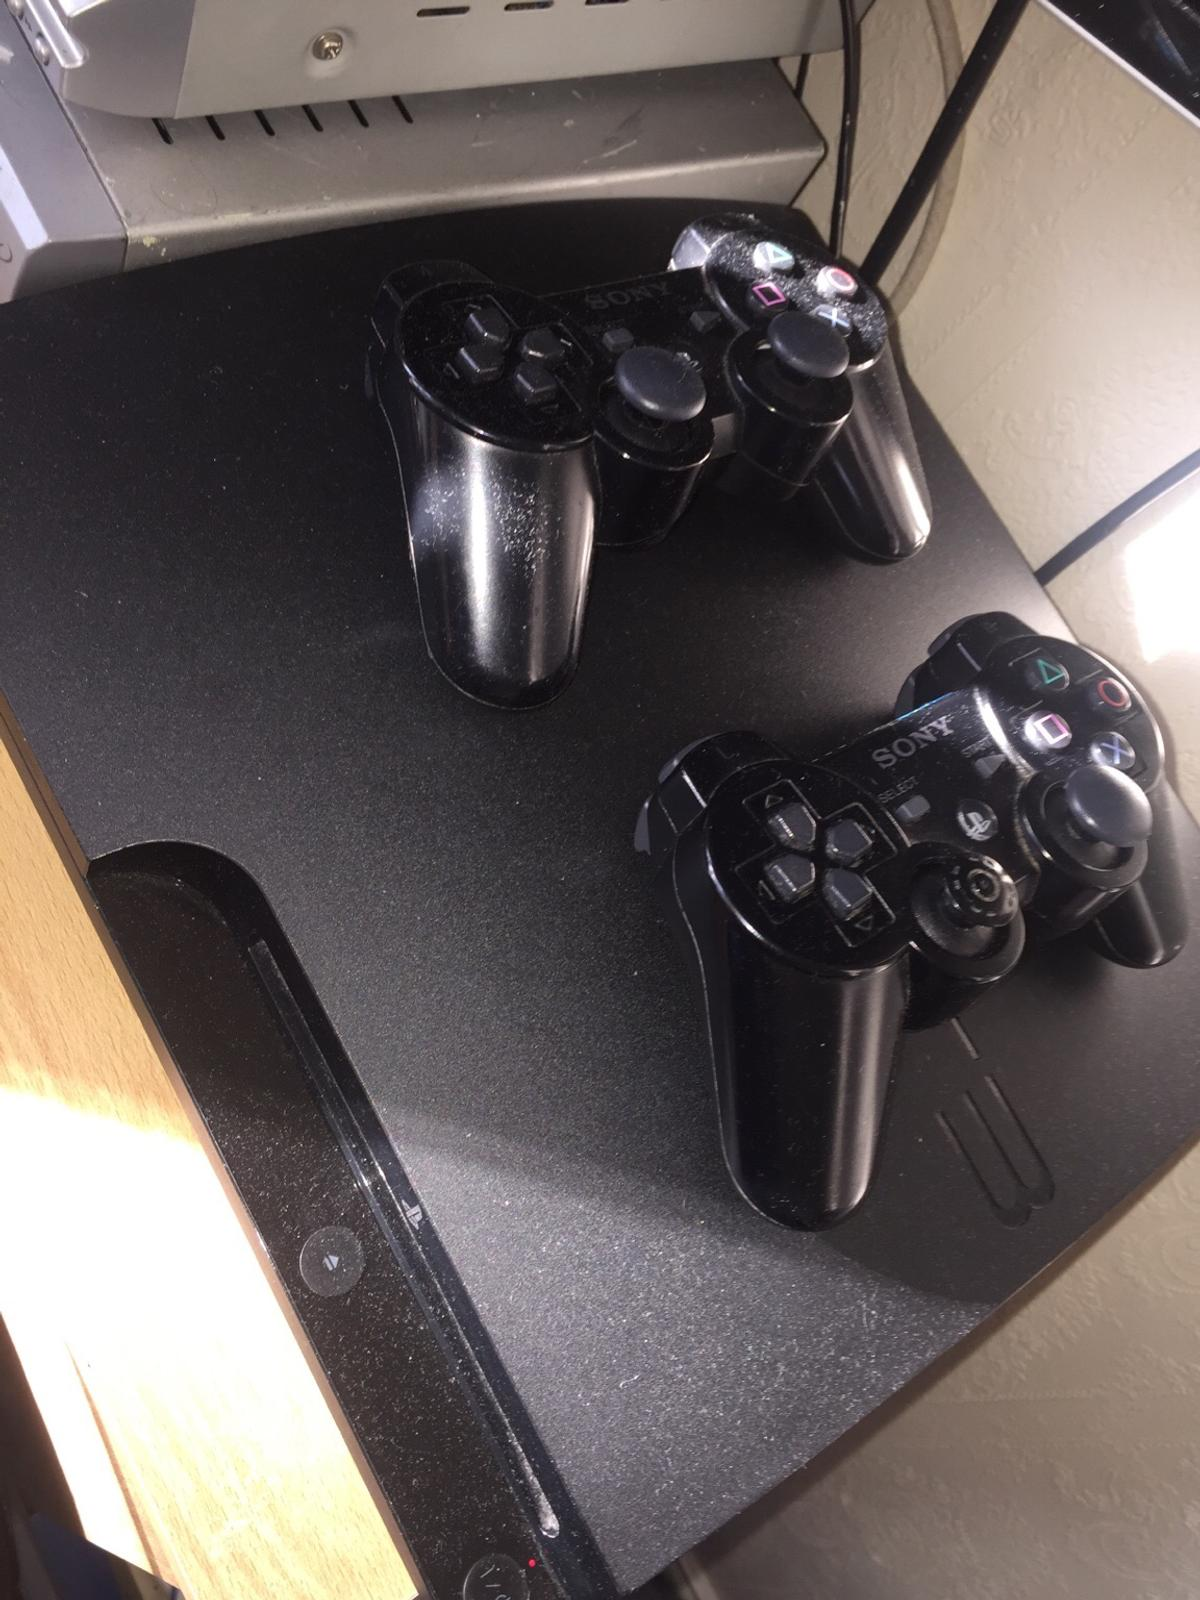 PS3 with 2 controllers and GTA 5